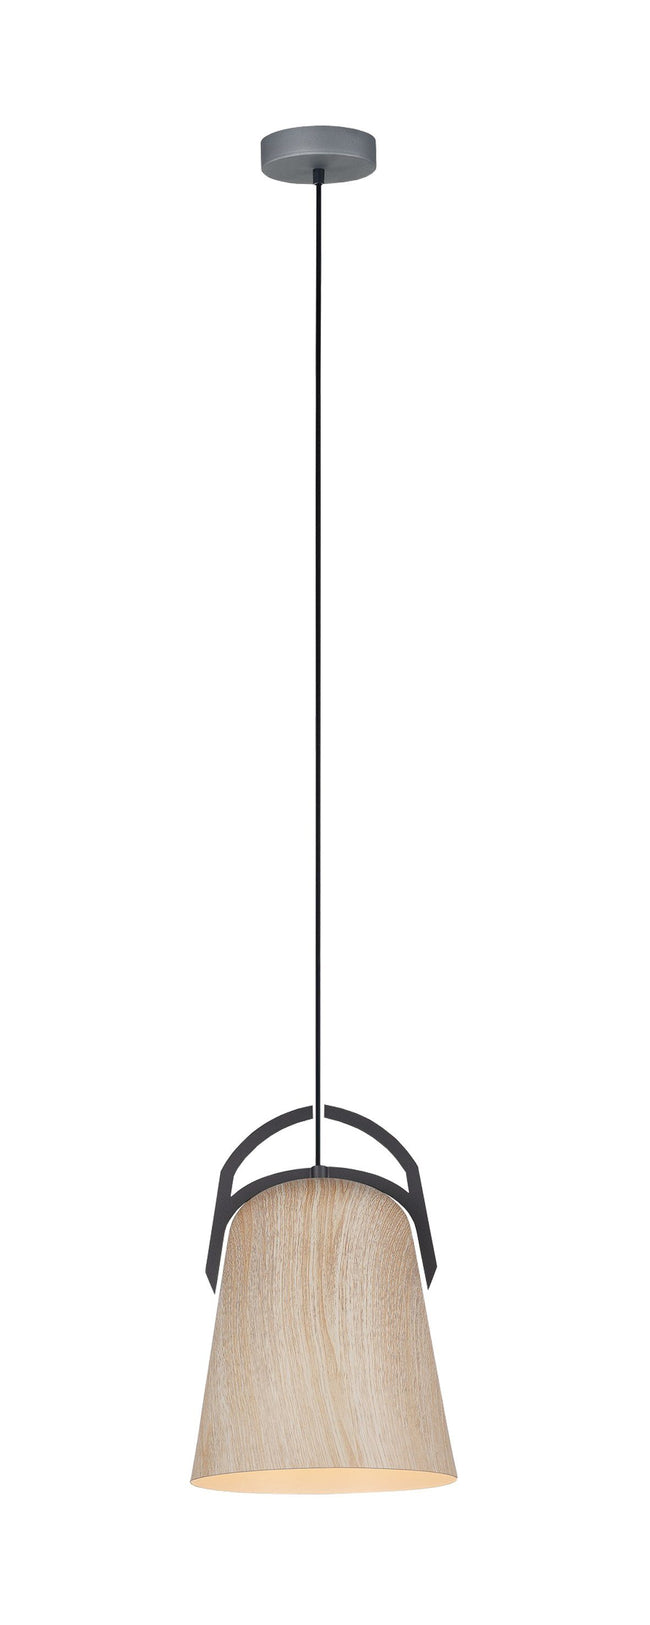 CLA Lighting Legna Natural Oak Ellipse Shaped Pendant